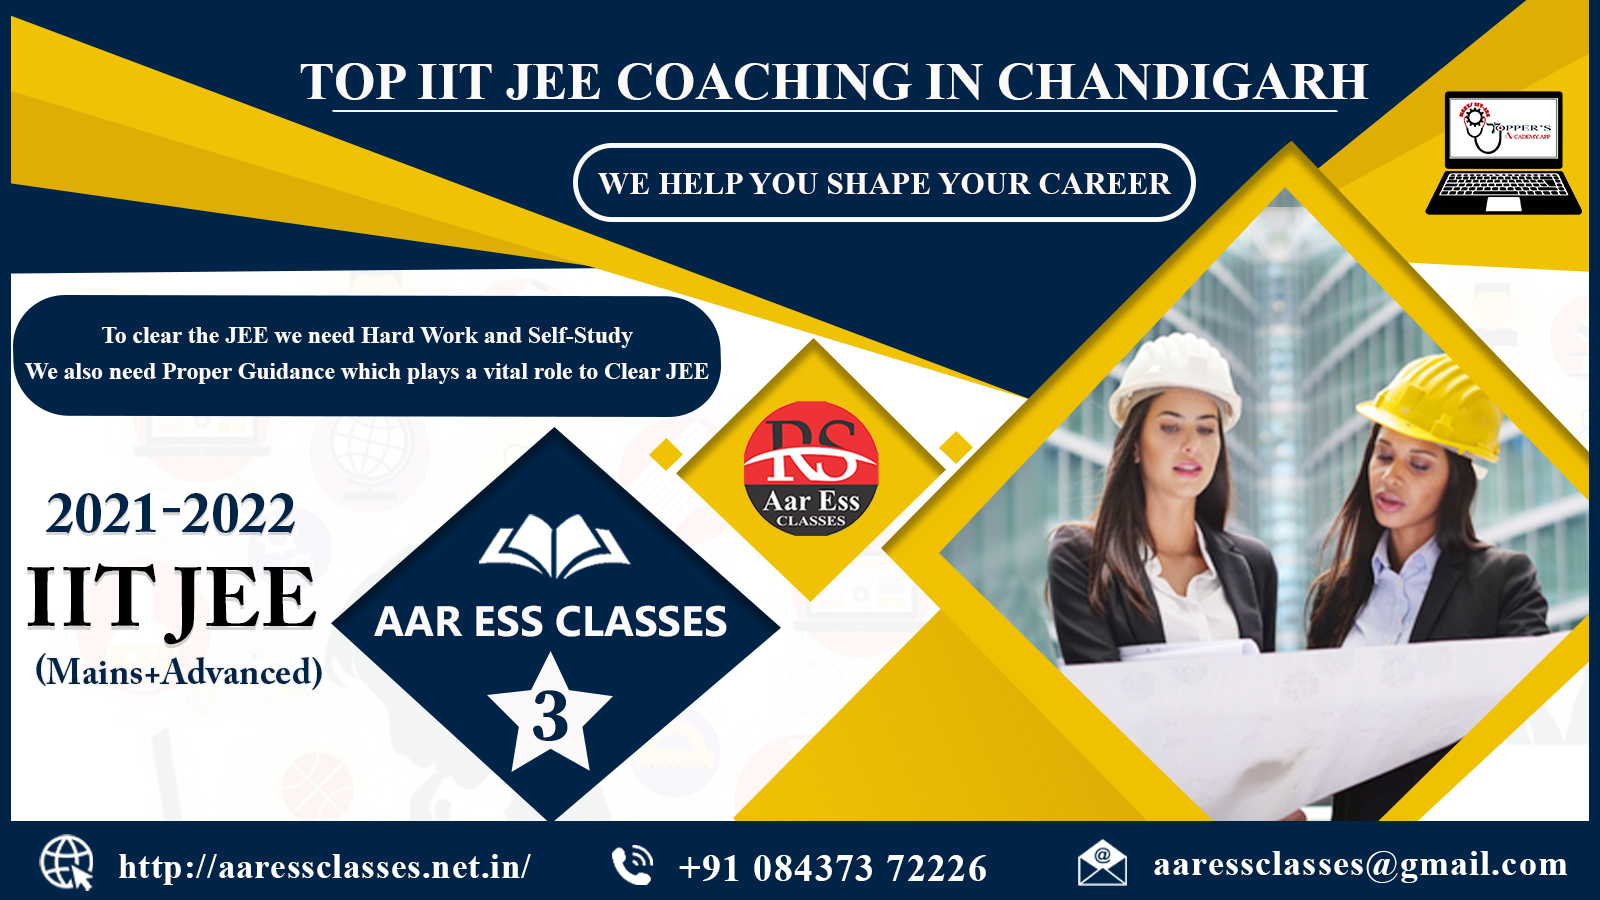 Best coaching for IIT JEE in chandigarh